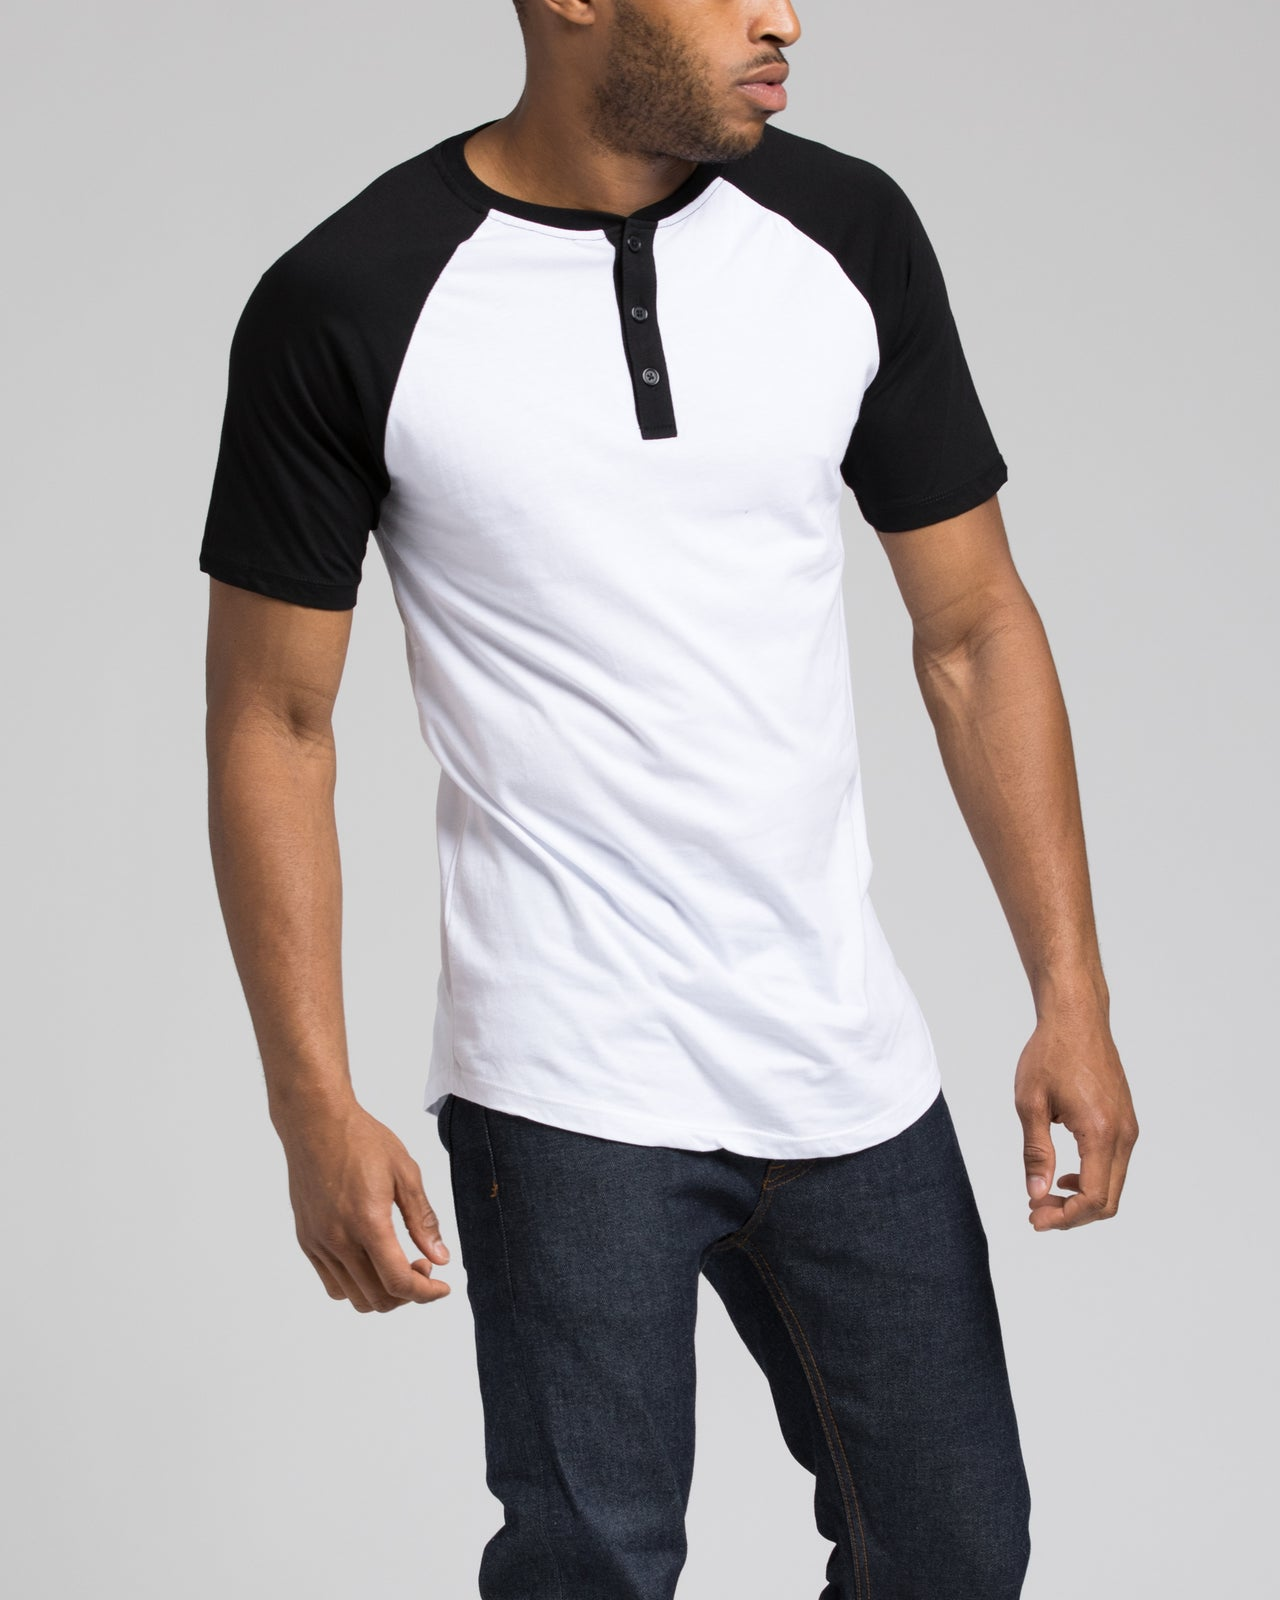 Short Sleeve Henley - Color: Black/White | White